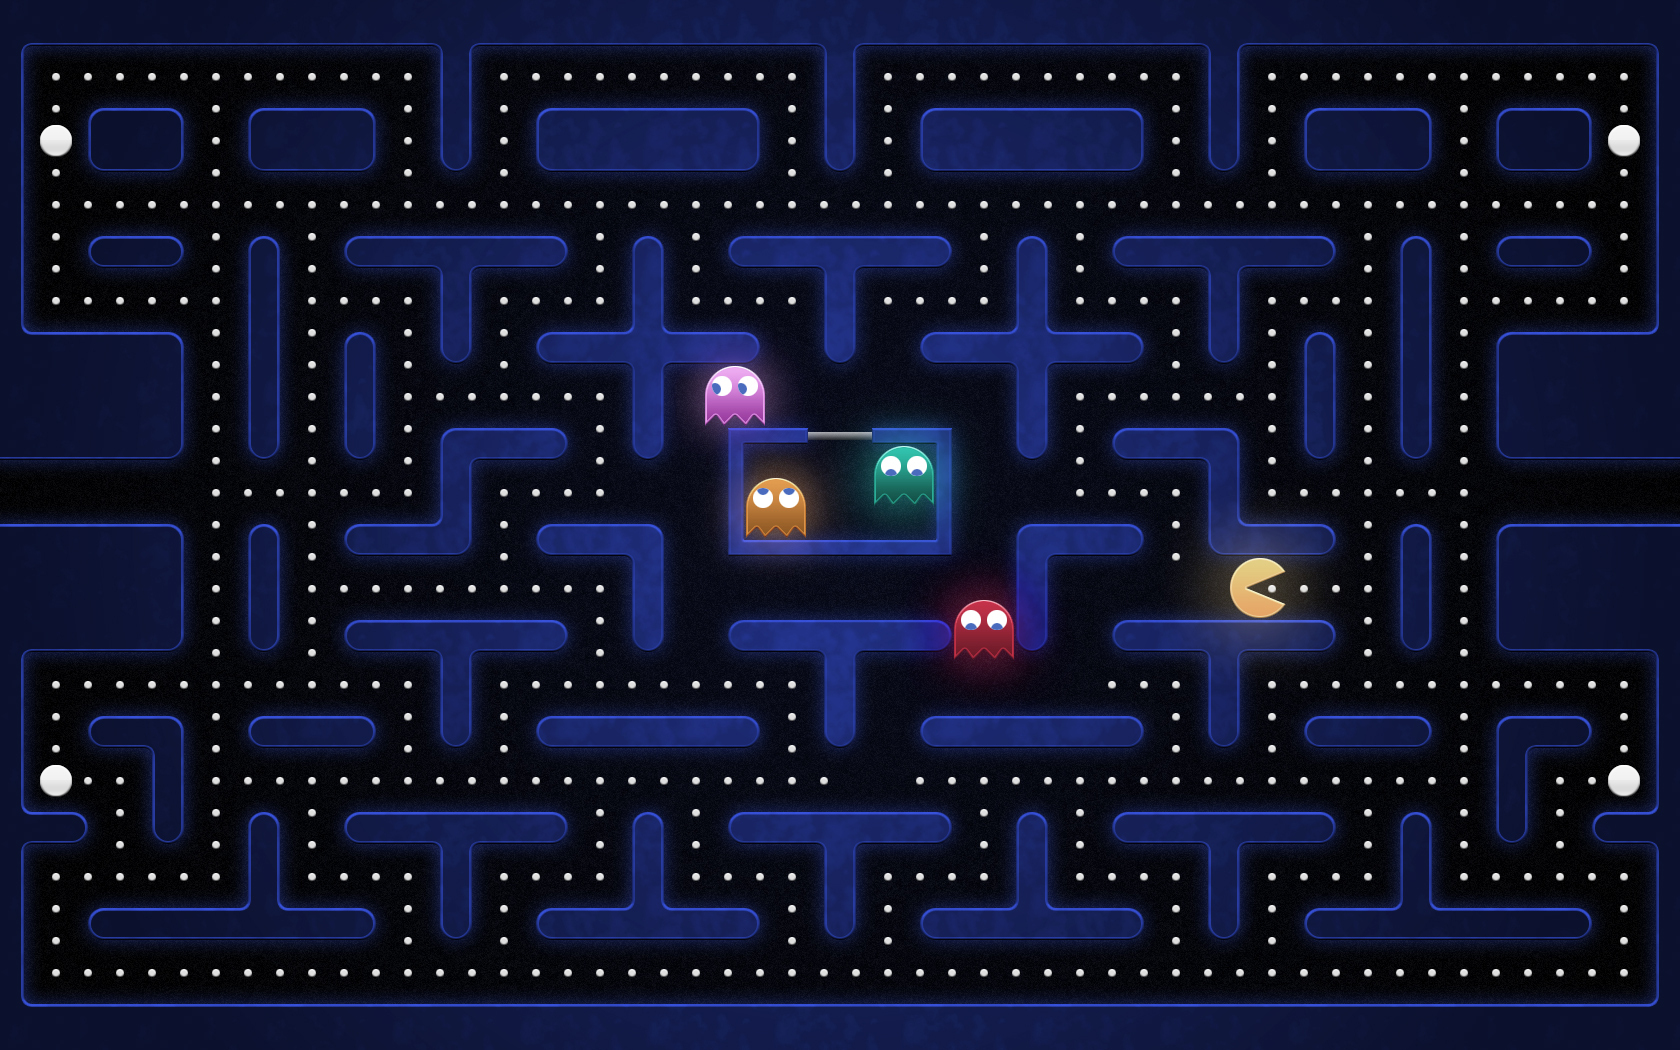 wallpapers game Pac-man wallpapers